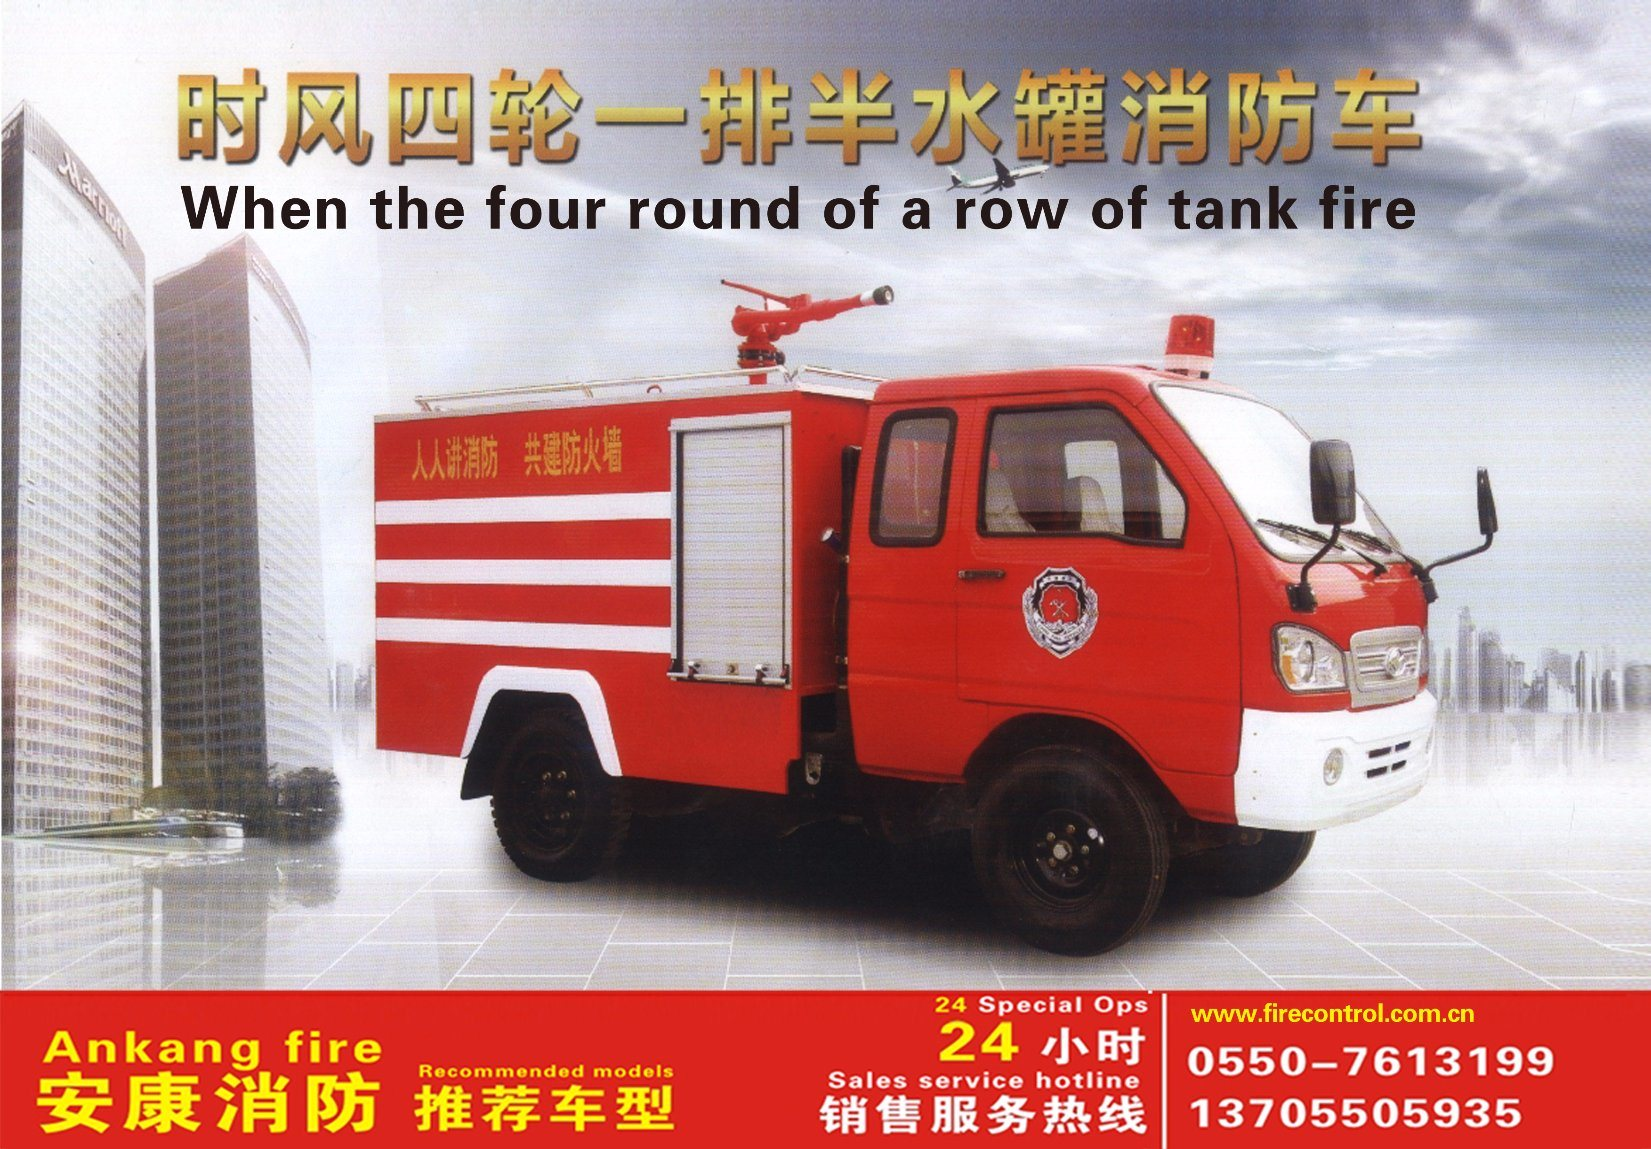 1.8t Small Multi-Functional Water Tank Fire Truck